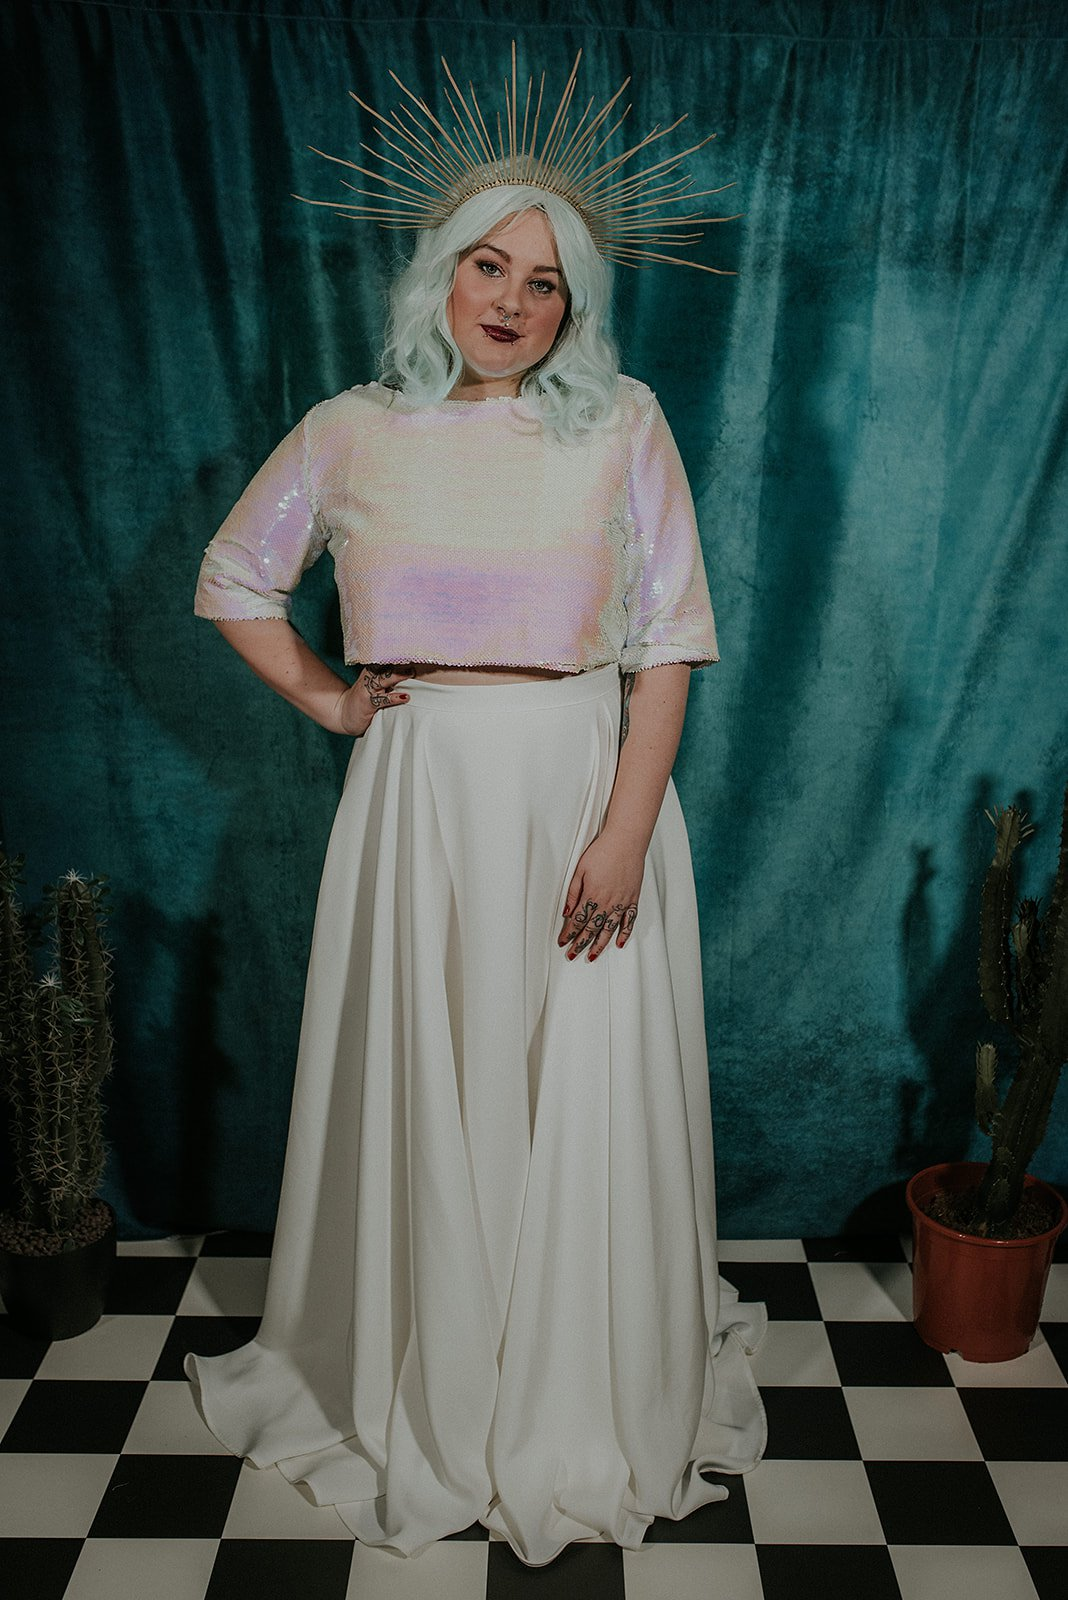 Lucy Cant Dance Cosmic Rodeo Alternative wedding dresses separates Megan Elle Photography 00035.jpg